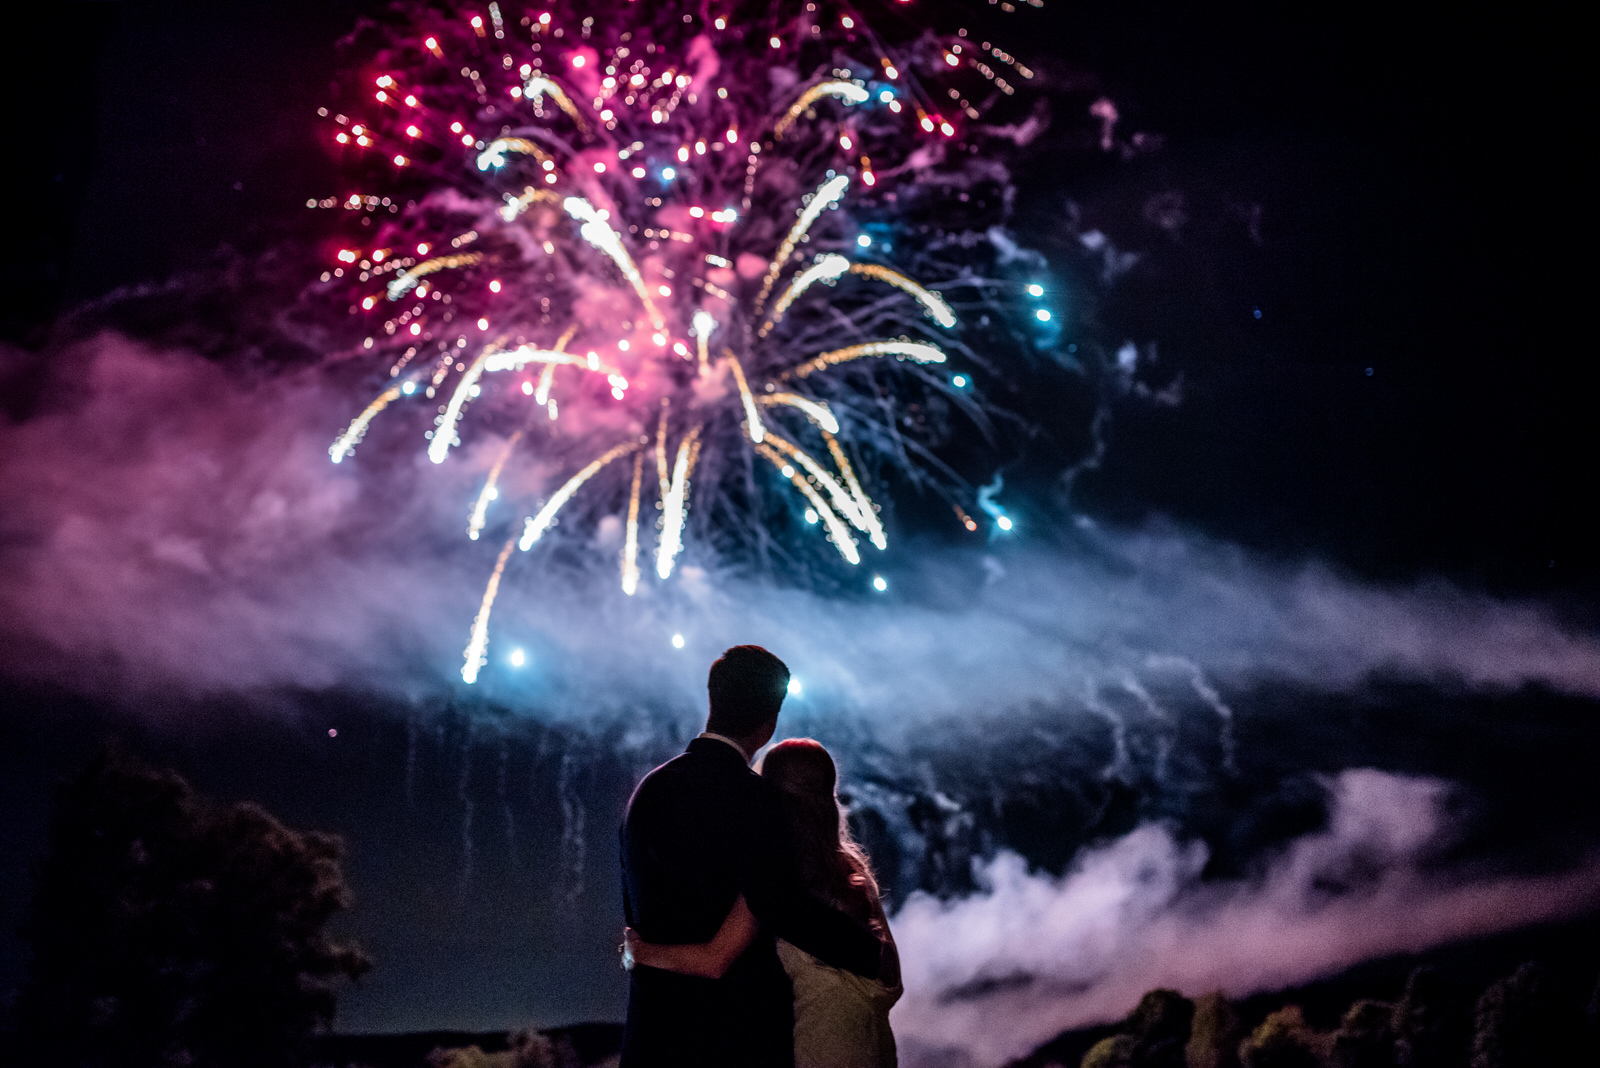 Fireworks display over bride and groom at the end of their countryside wedding